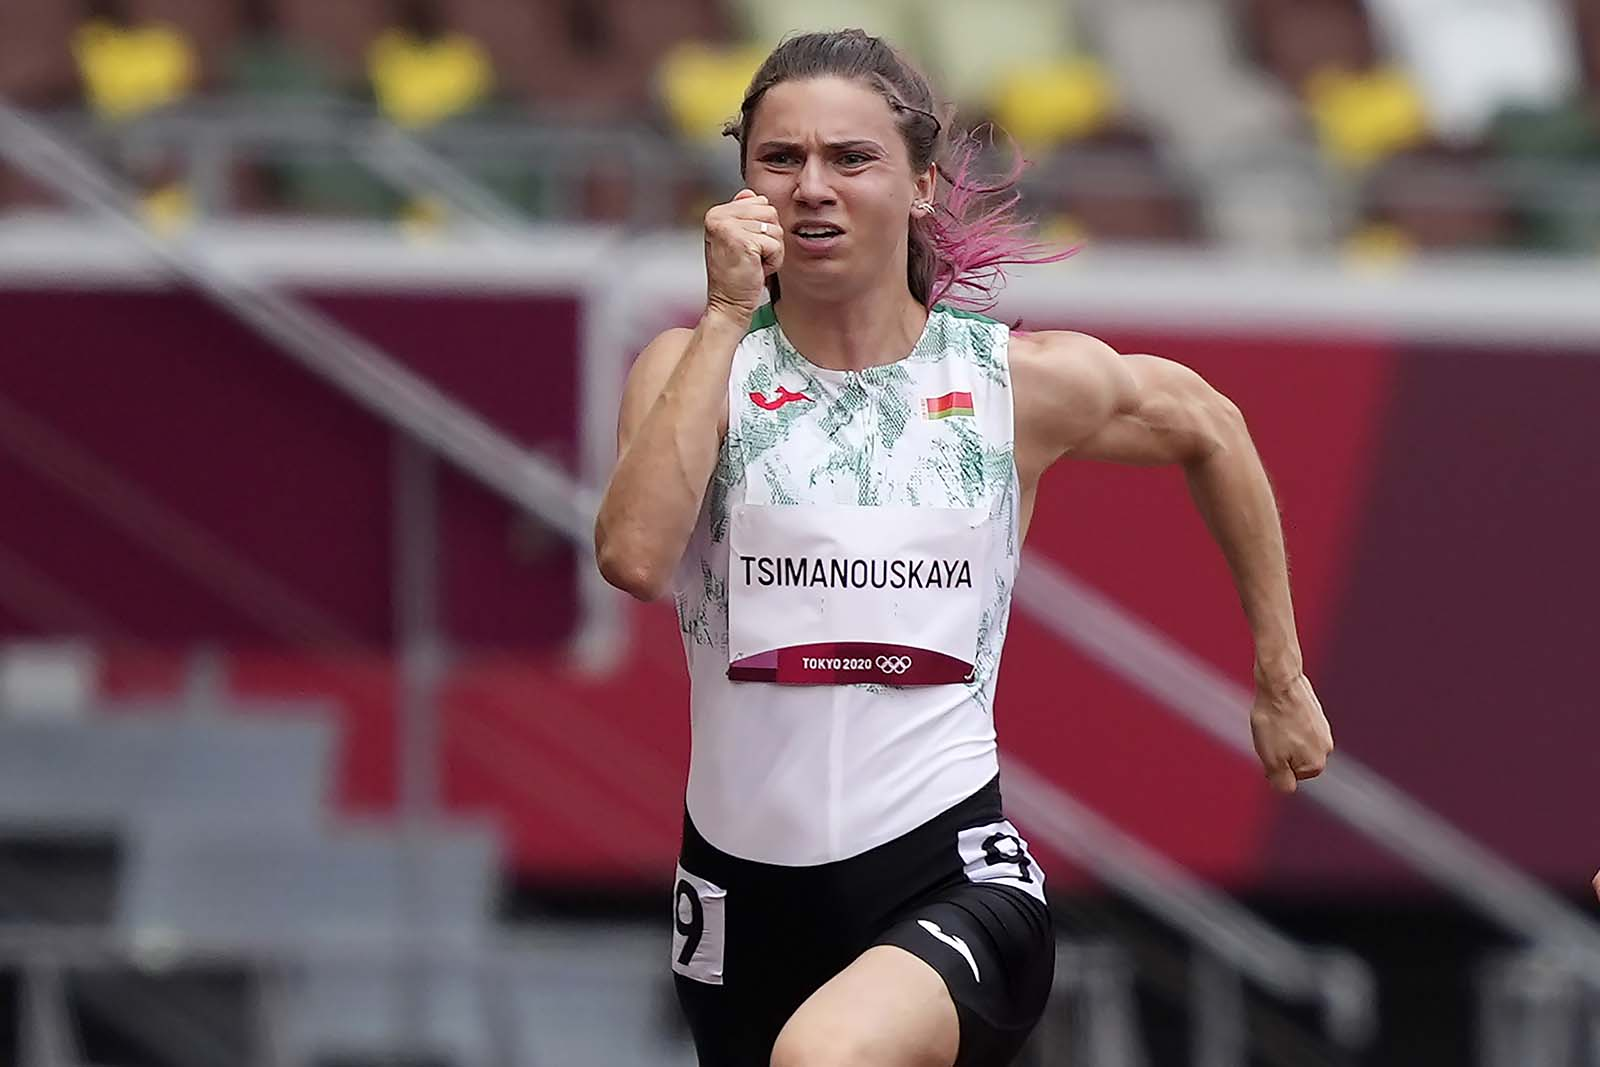 KristinaTimanovskaya of Belarus is pictured running in the women's 100m competition on Friday, July 30.